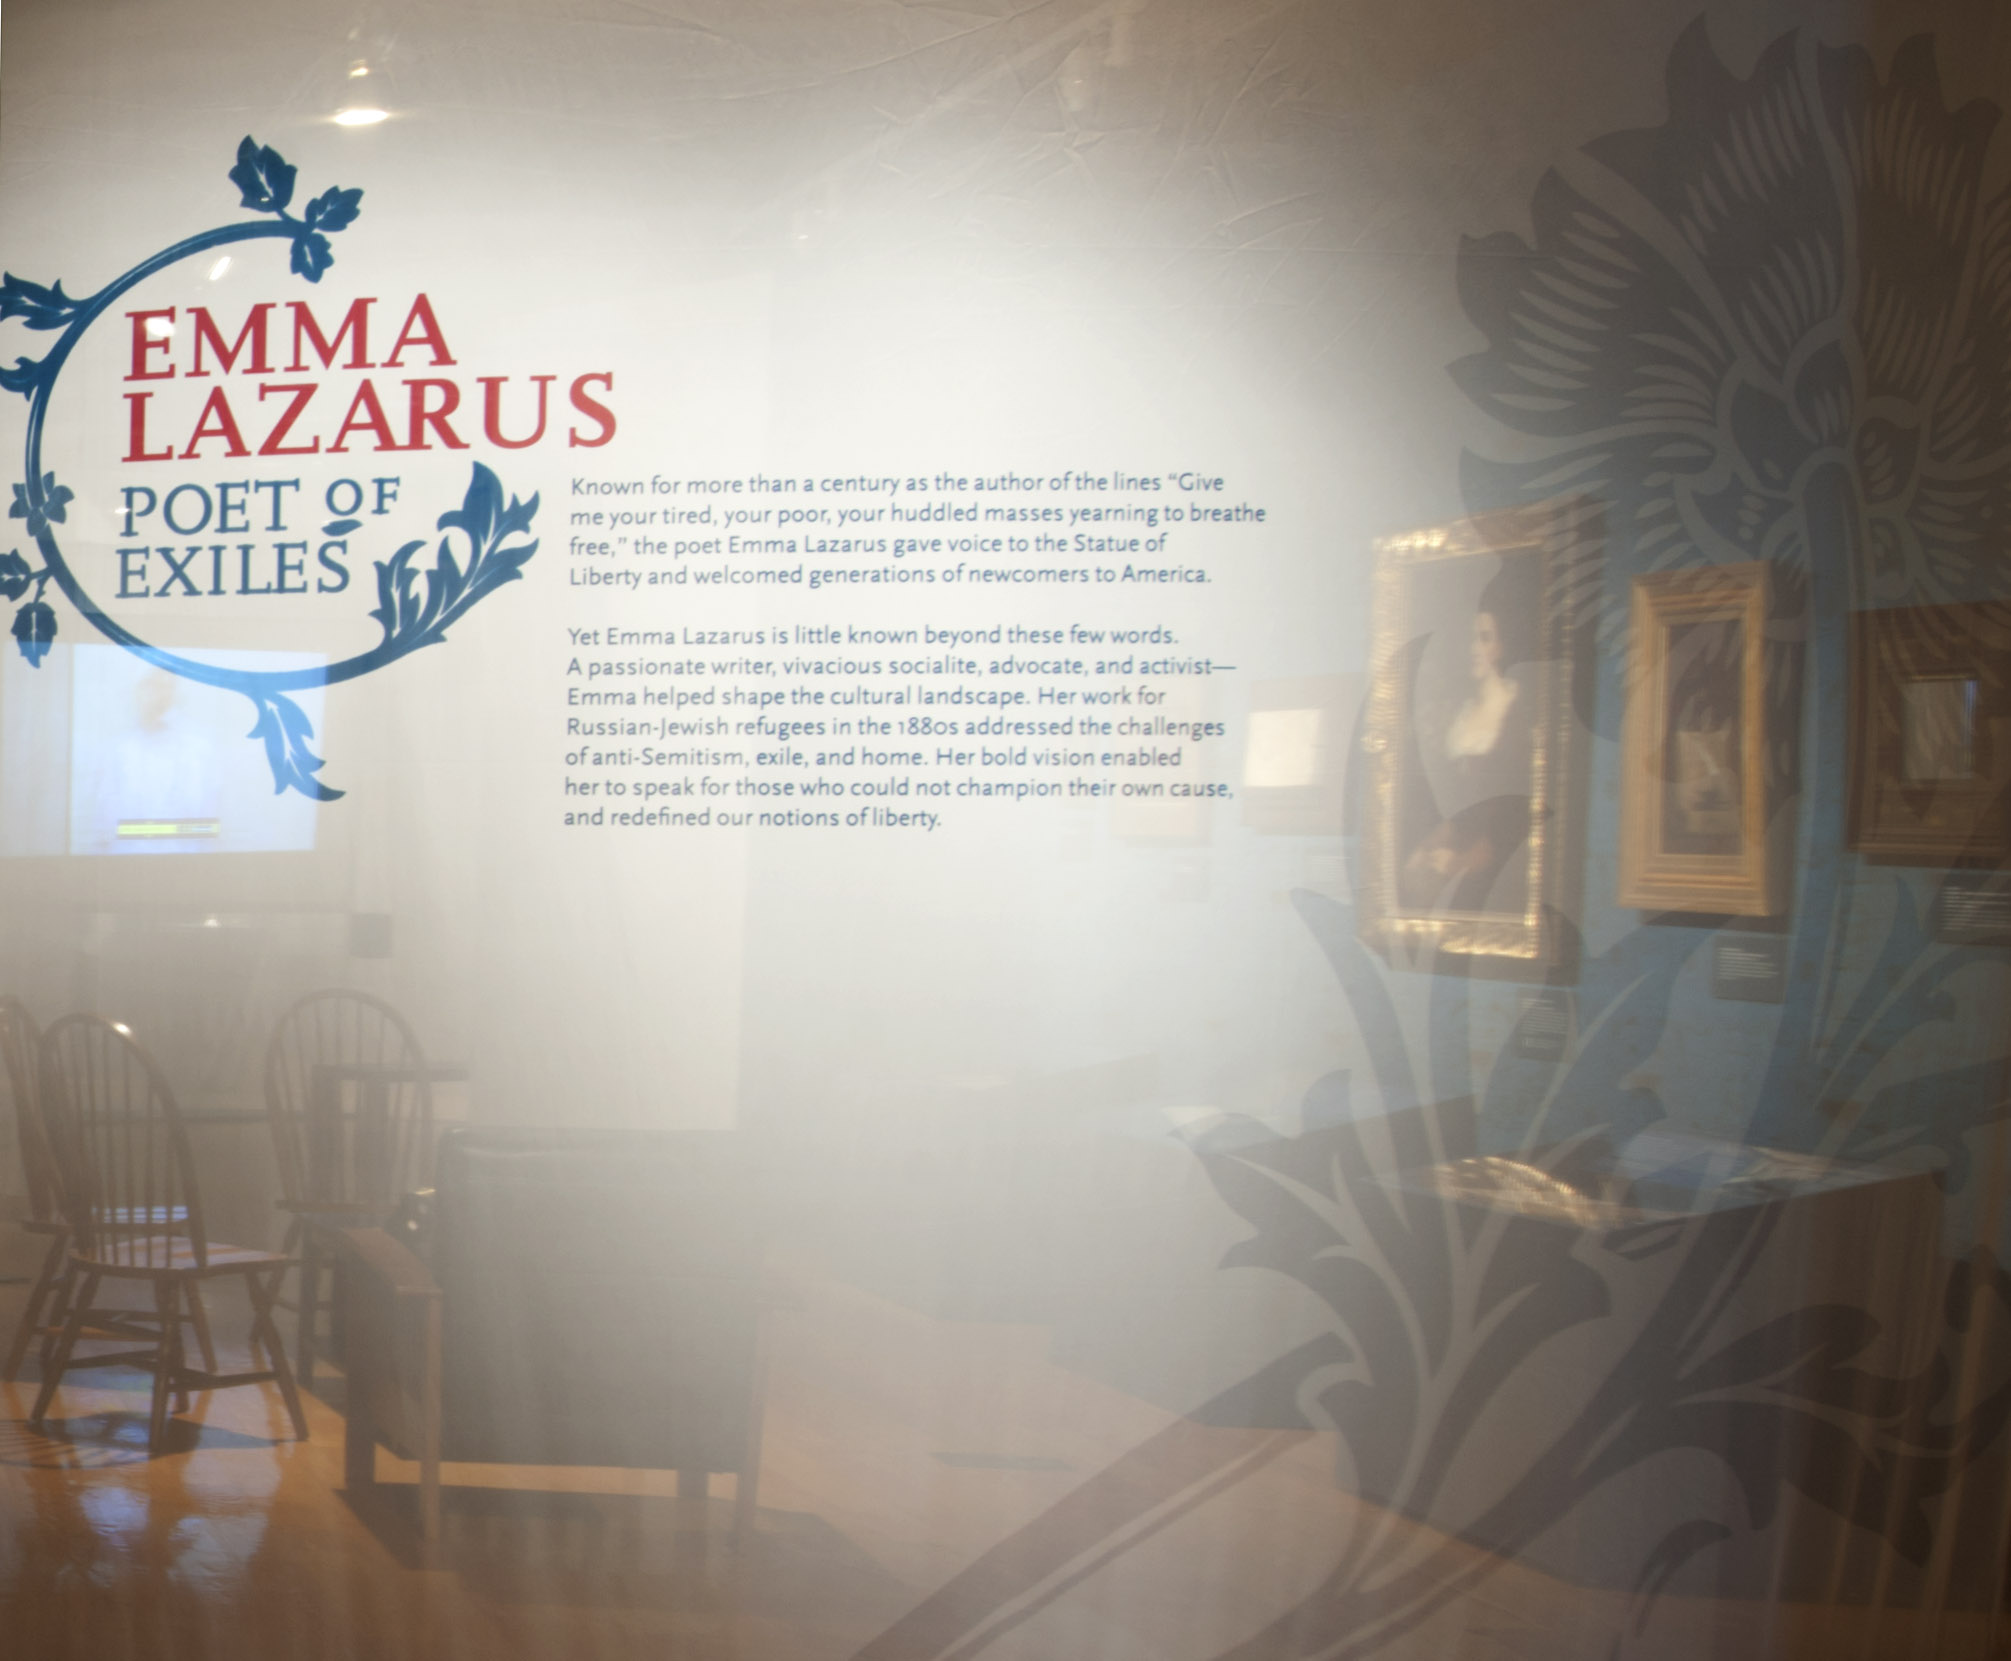 Project image 1 for Emma Lazarus: Poet of Exiles, Museum of Jewish Heritage